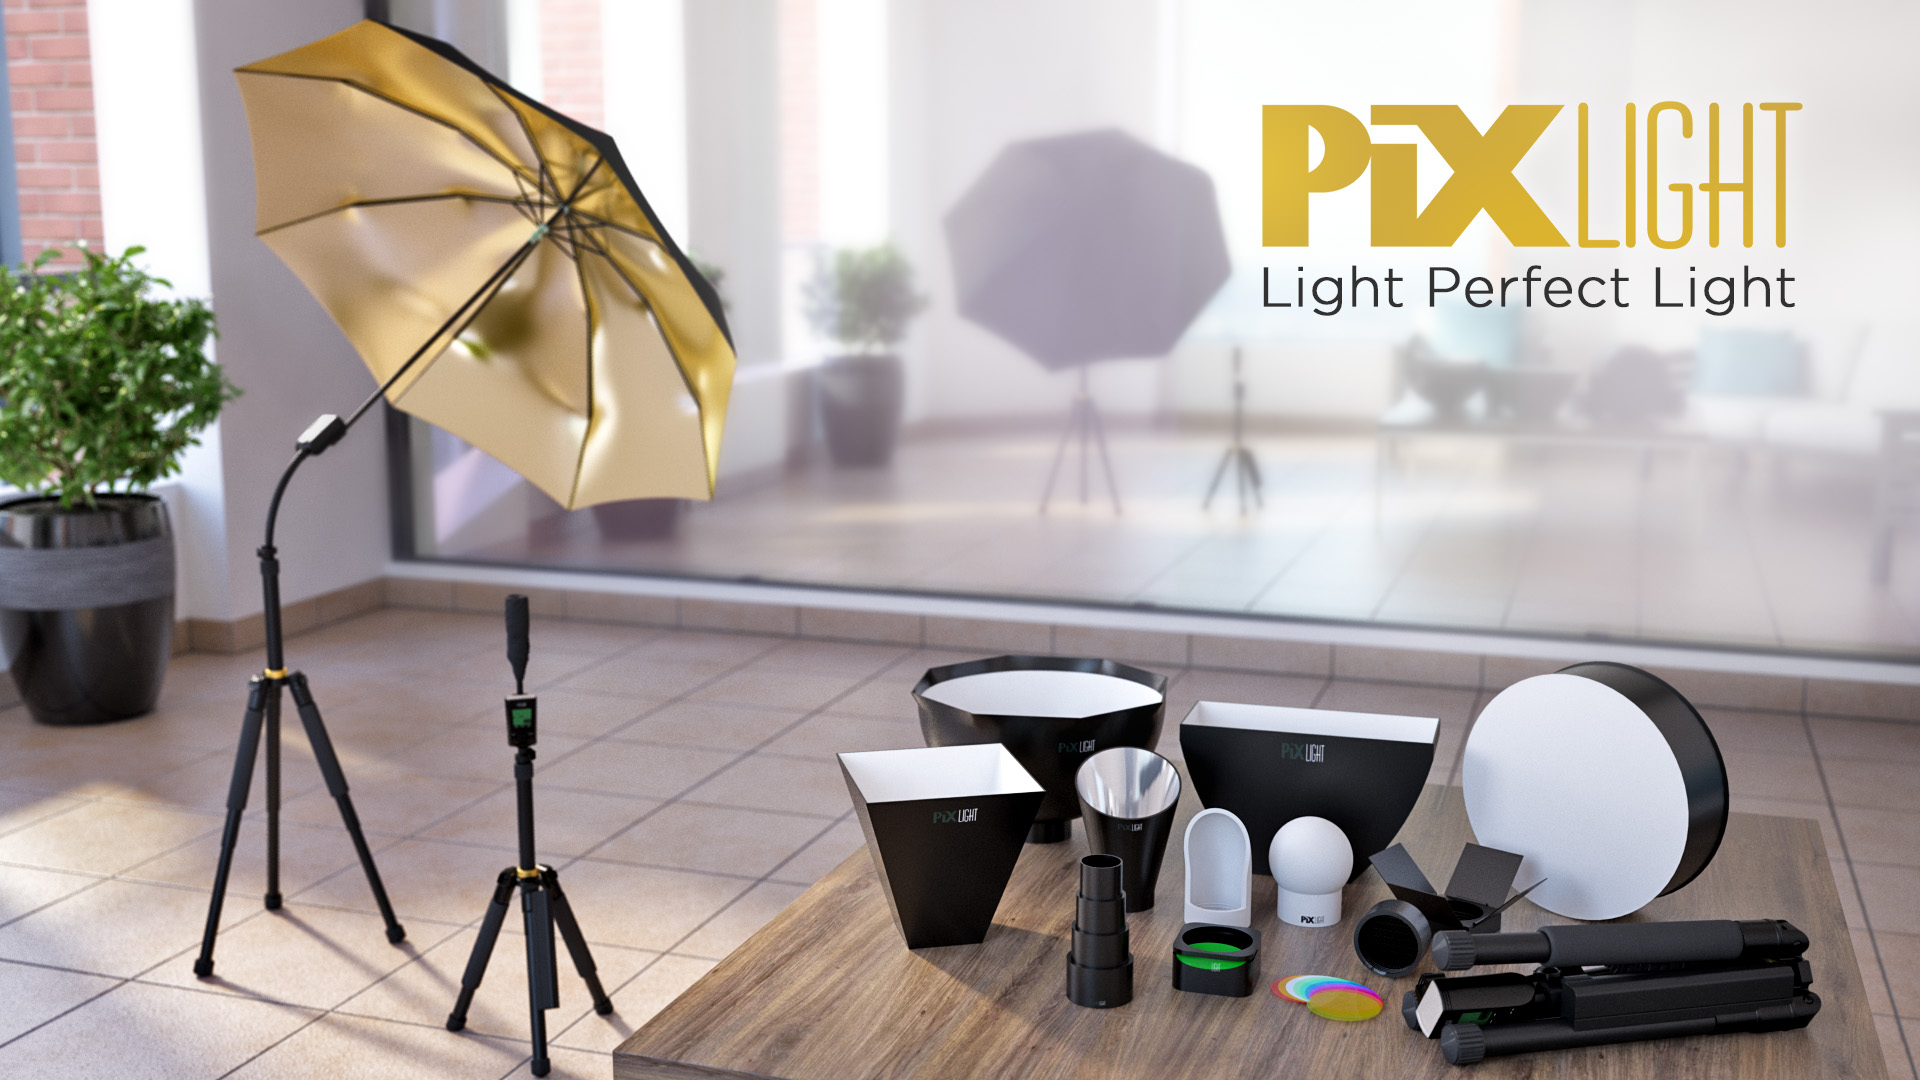 Save The Date: PiXLIGHT Kickstarter Campaign Goes Live in February 10, 2020